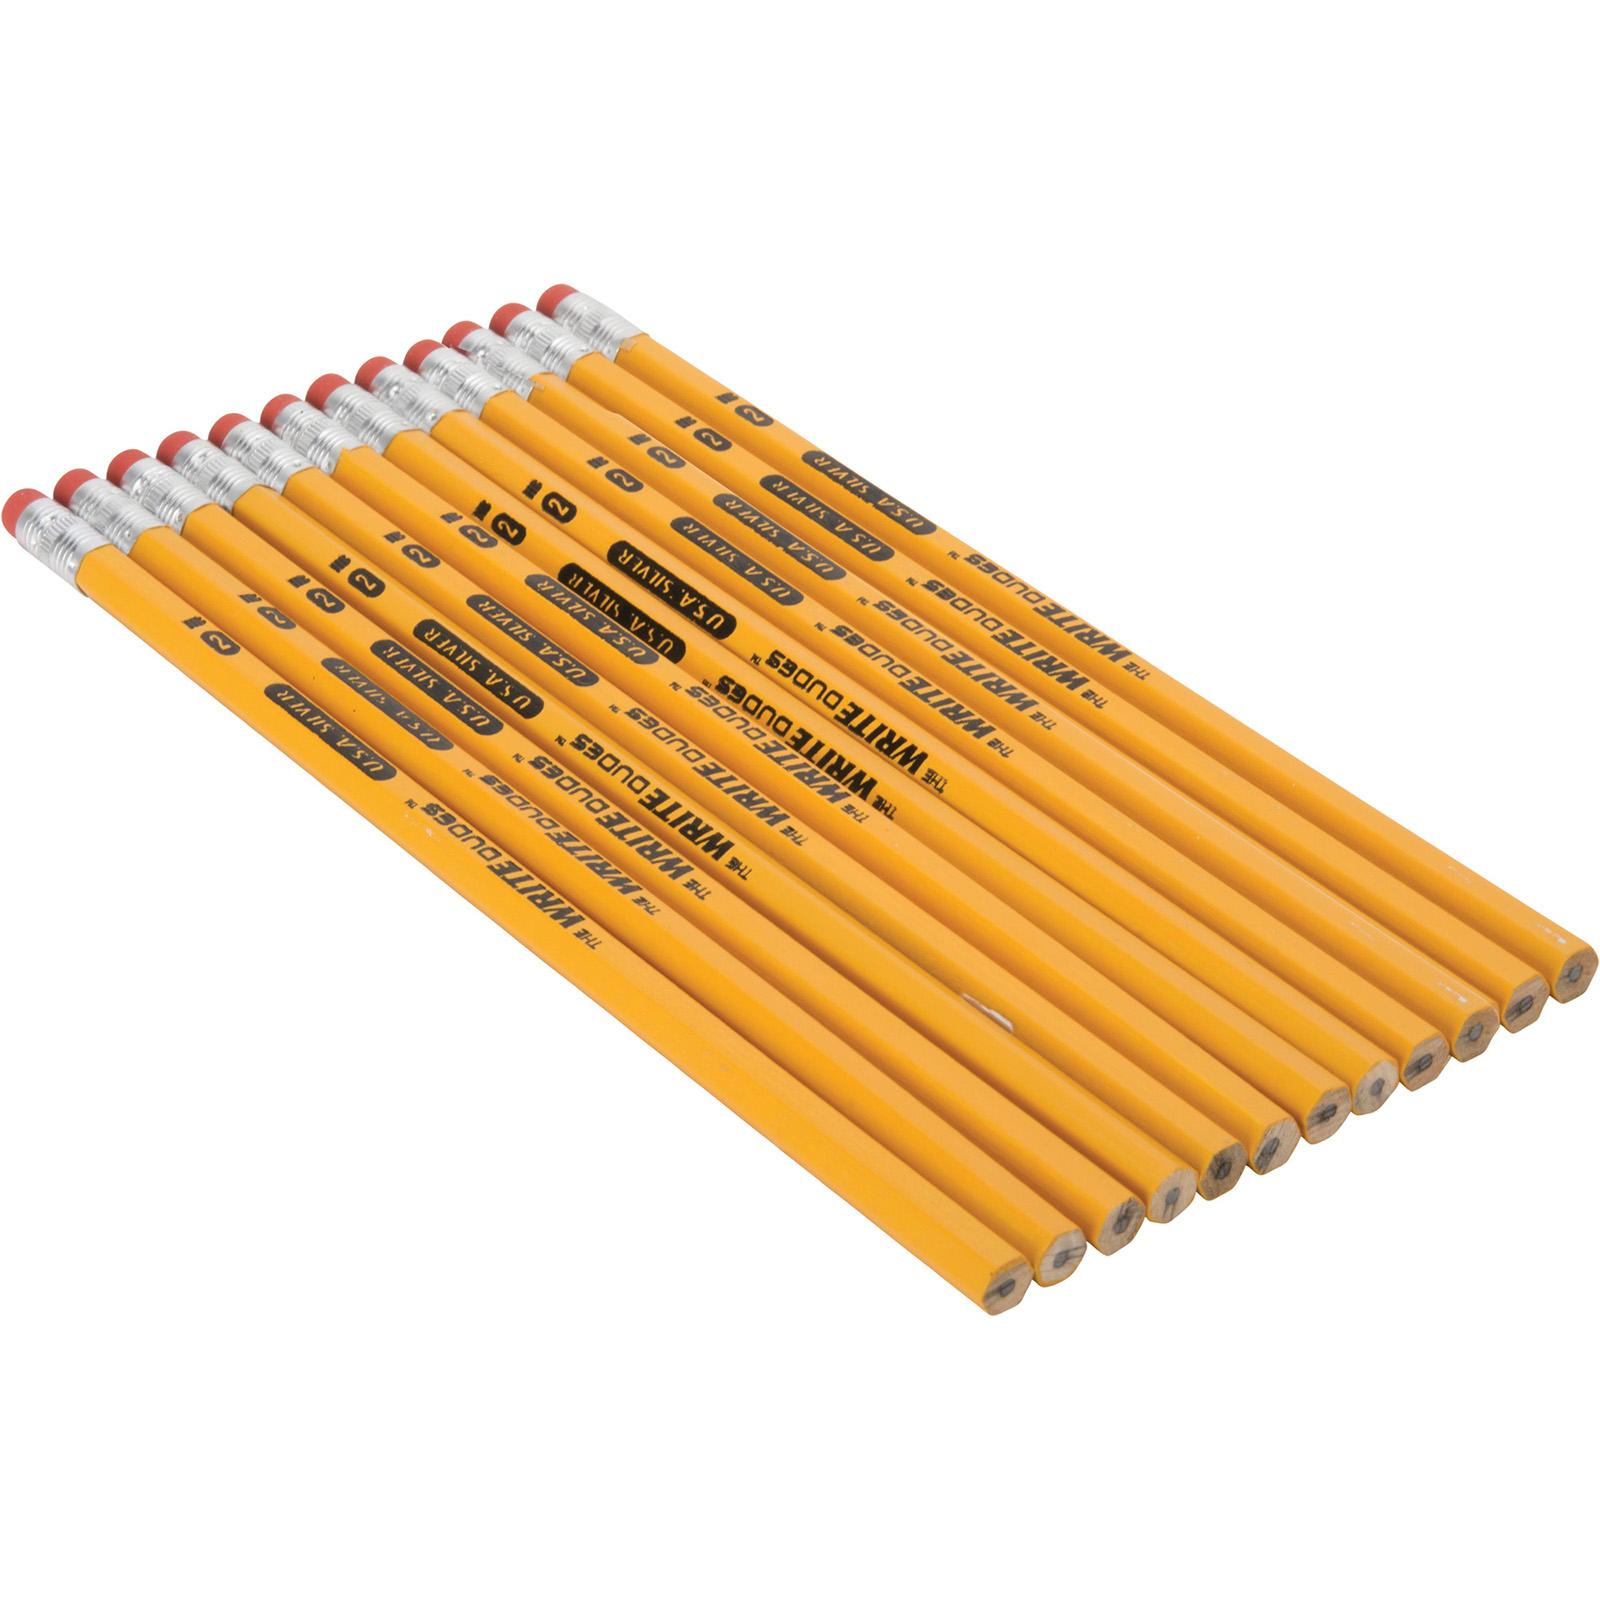 Pencils or Crayons or Notebook